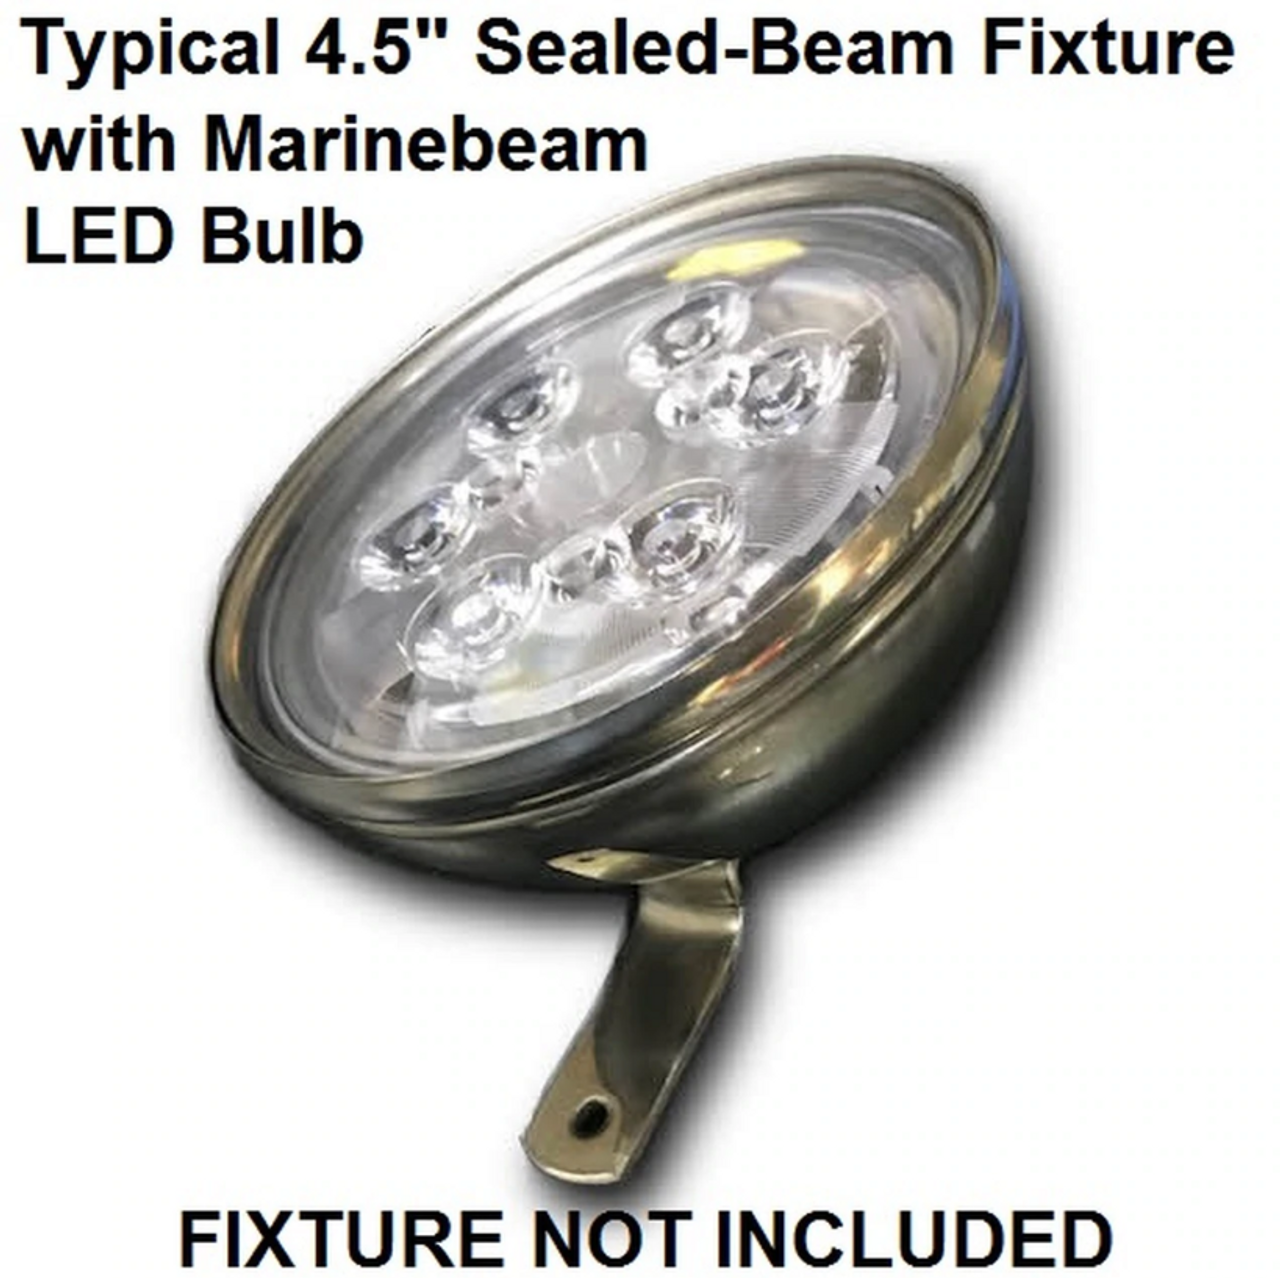 Stainless Steel Spreader Light Fixture (not included) with Marinebeam PAR36 Bulb